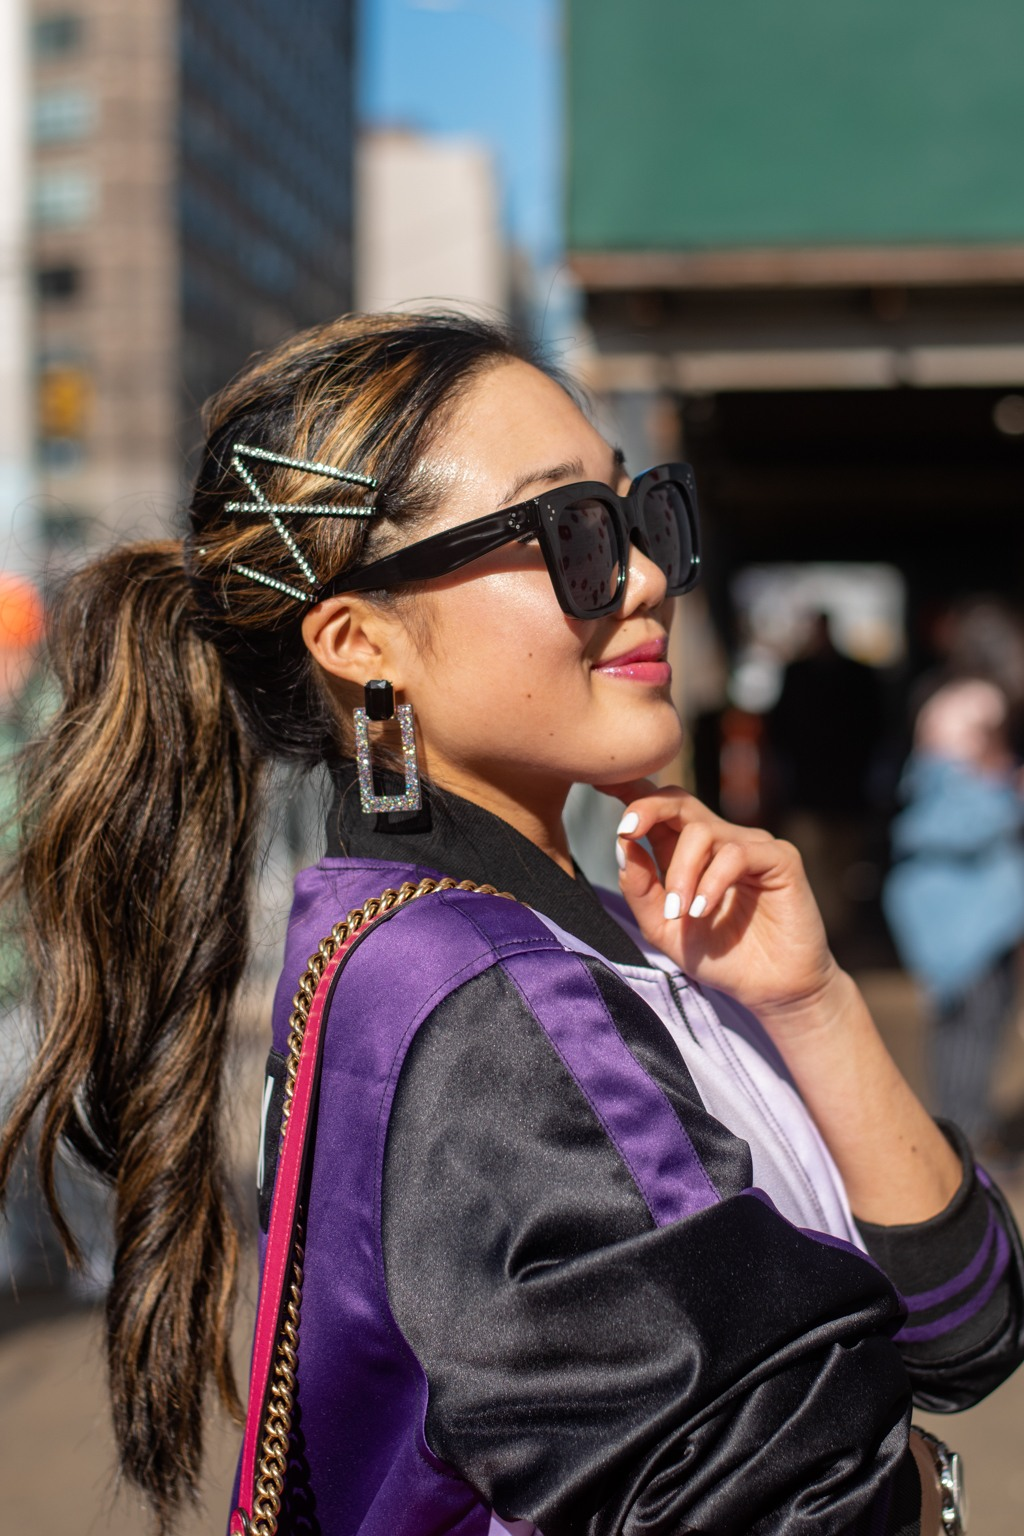 NYFW AW19 Street Style: Shot of woman with dark brown hair with caramel brown highlights wearing diamante hair slides, with square earrings with sunglasses